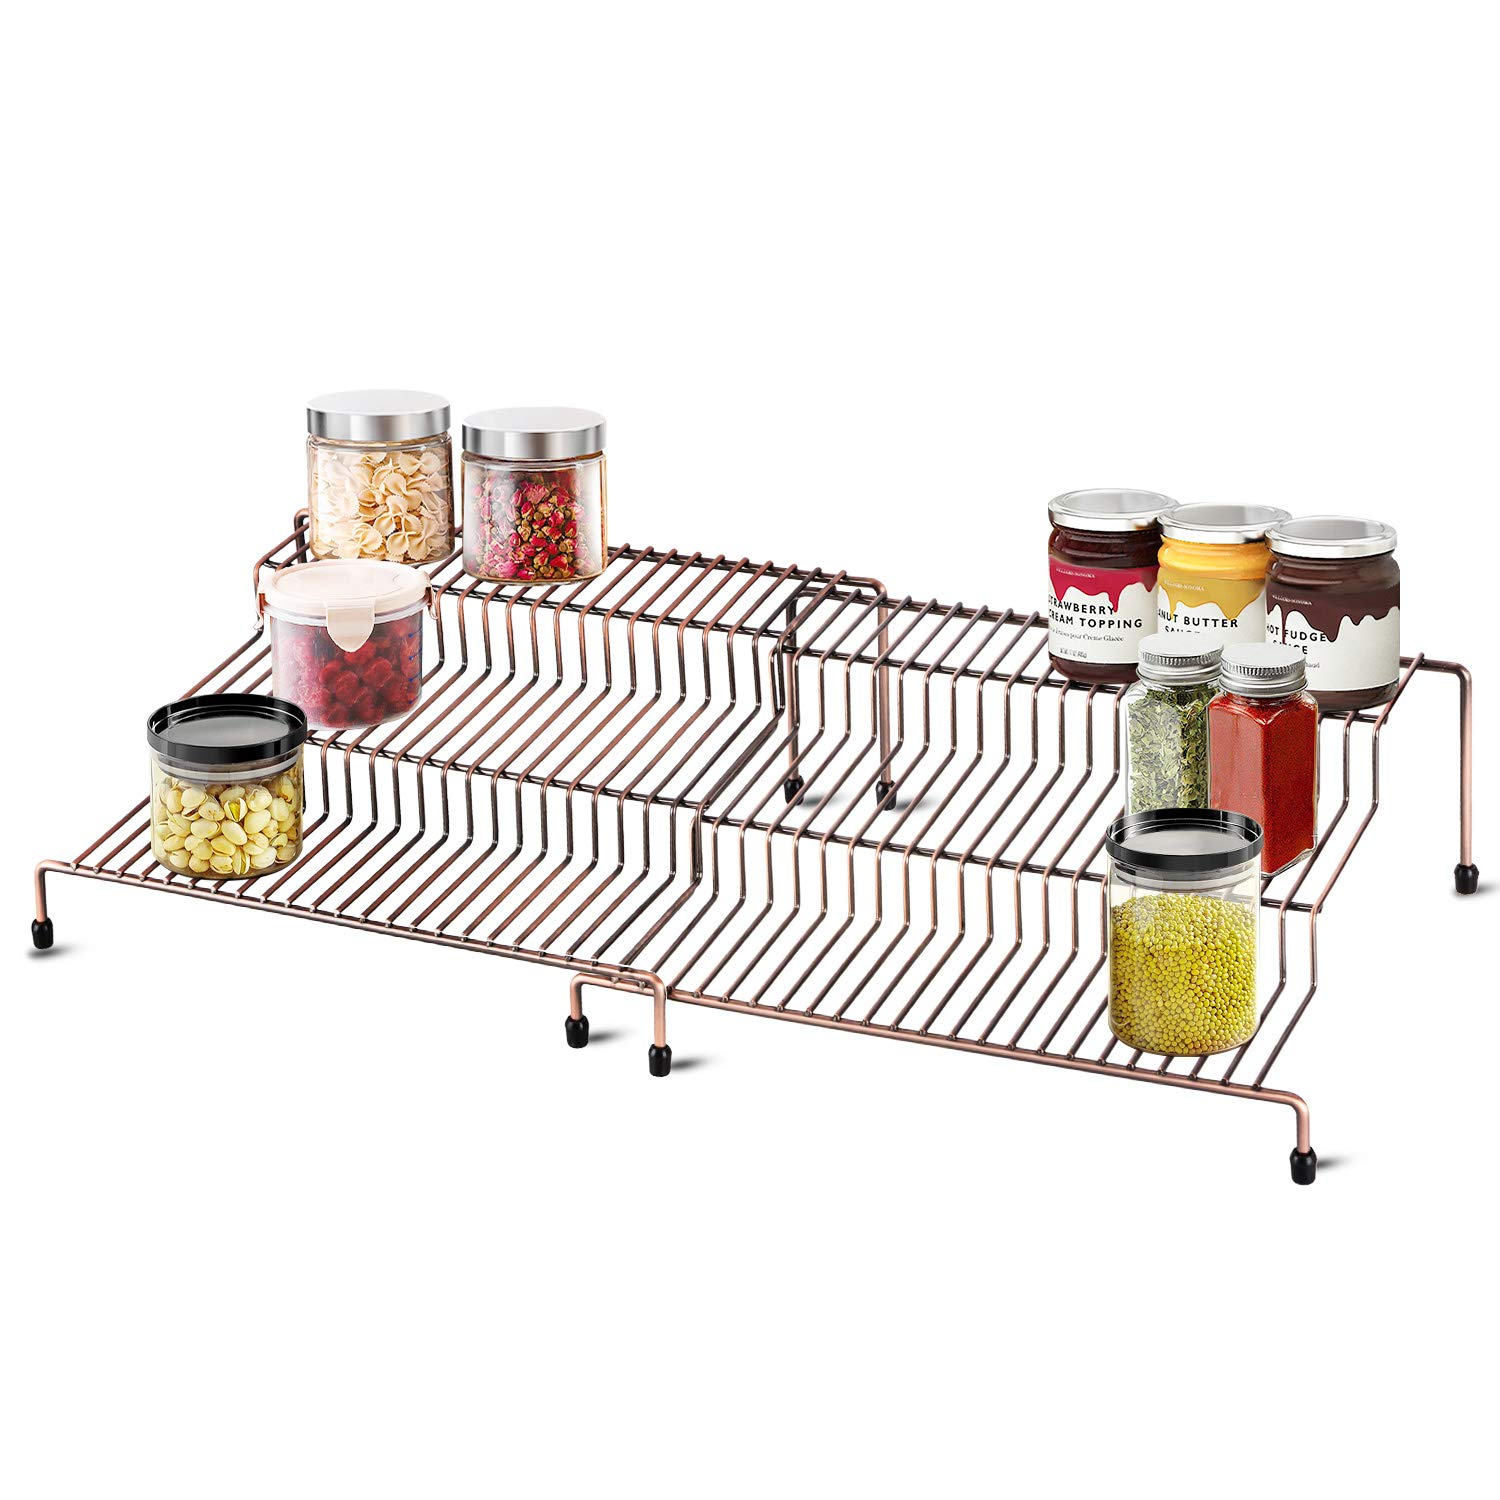 3 Tiers Expandable Spice Racks Step Shelf Multipurpose Storage Rack Non Skid Cabinet Countertop Organizer For Kitchen Pantry Bathroom 2 Pack